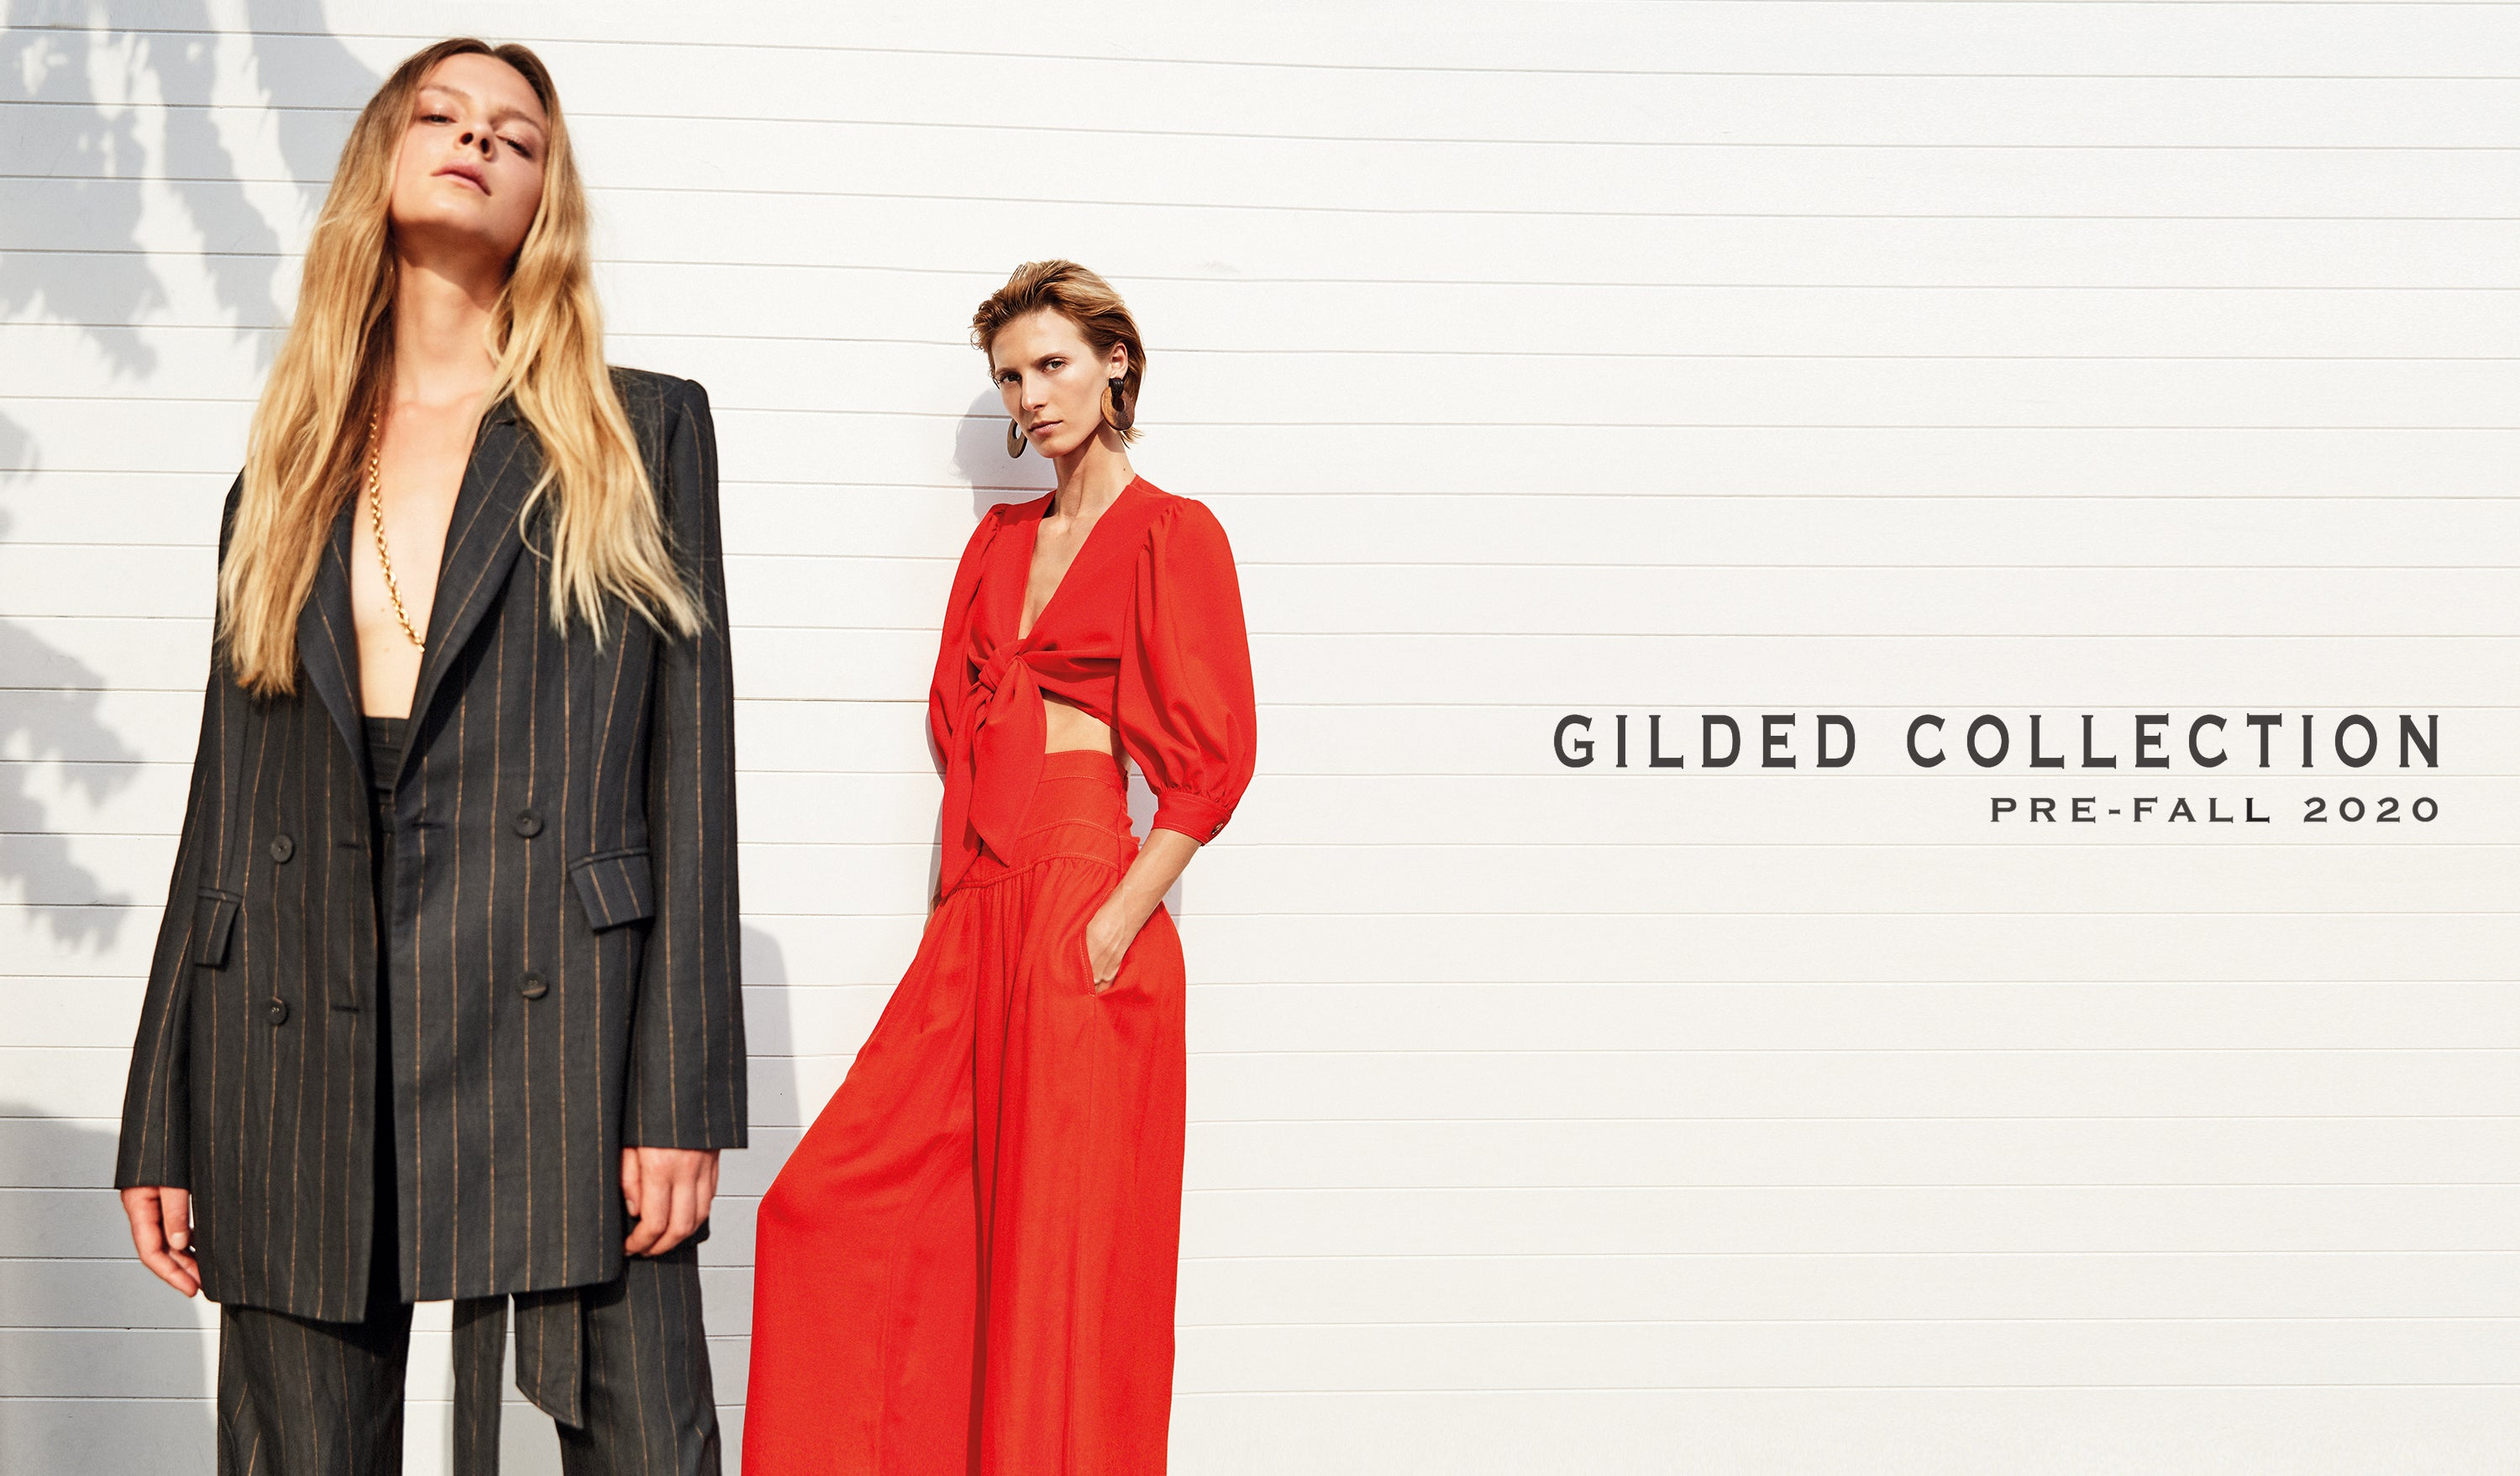 GILDED COLLECTION